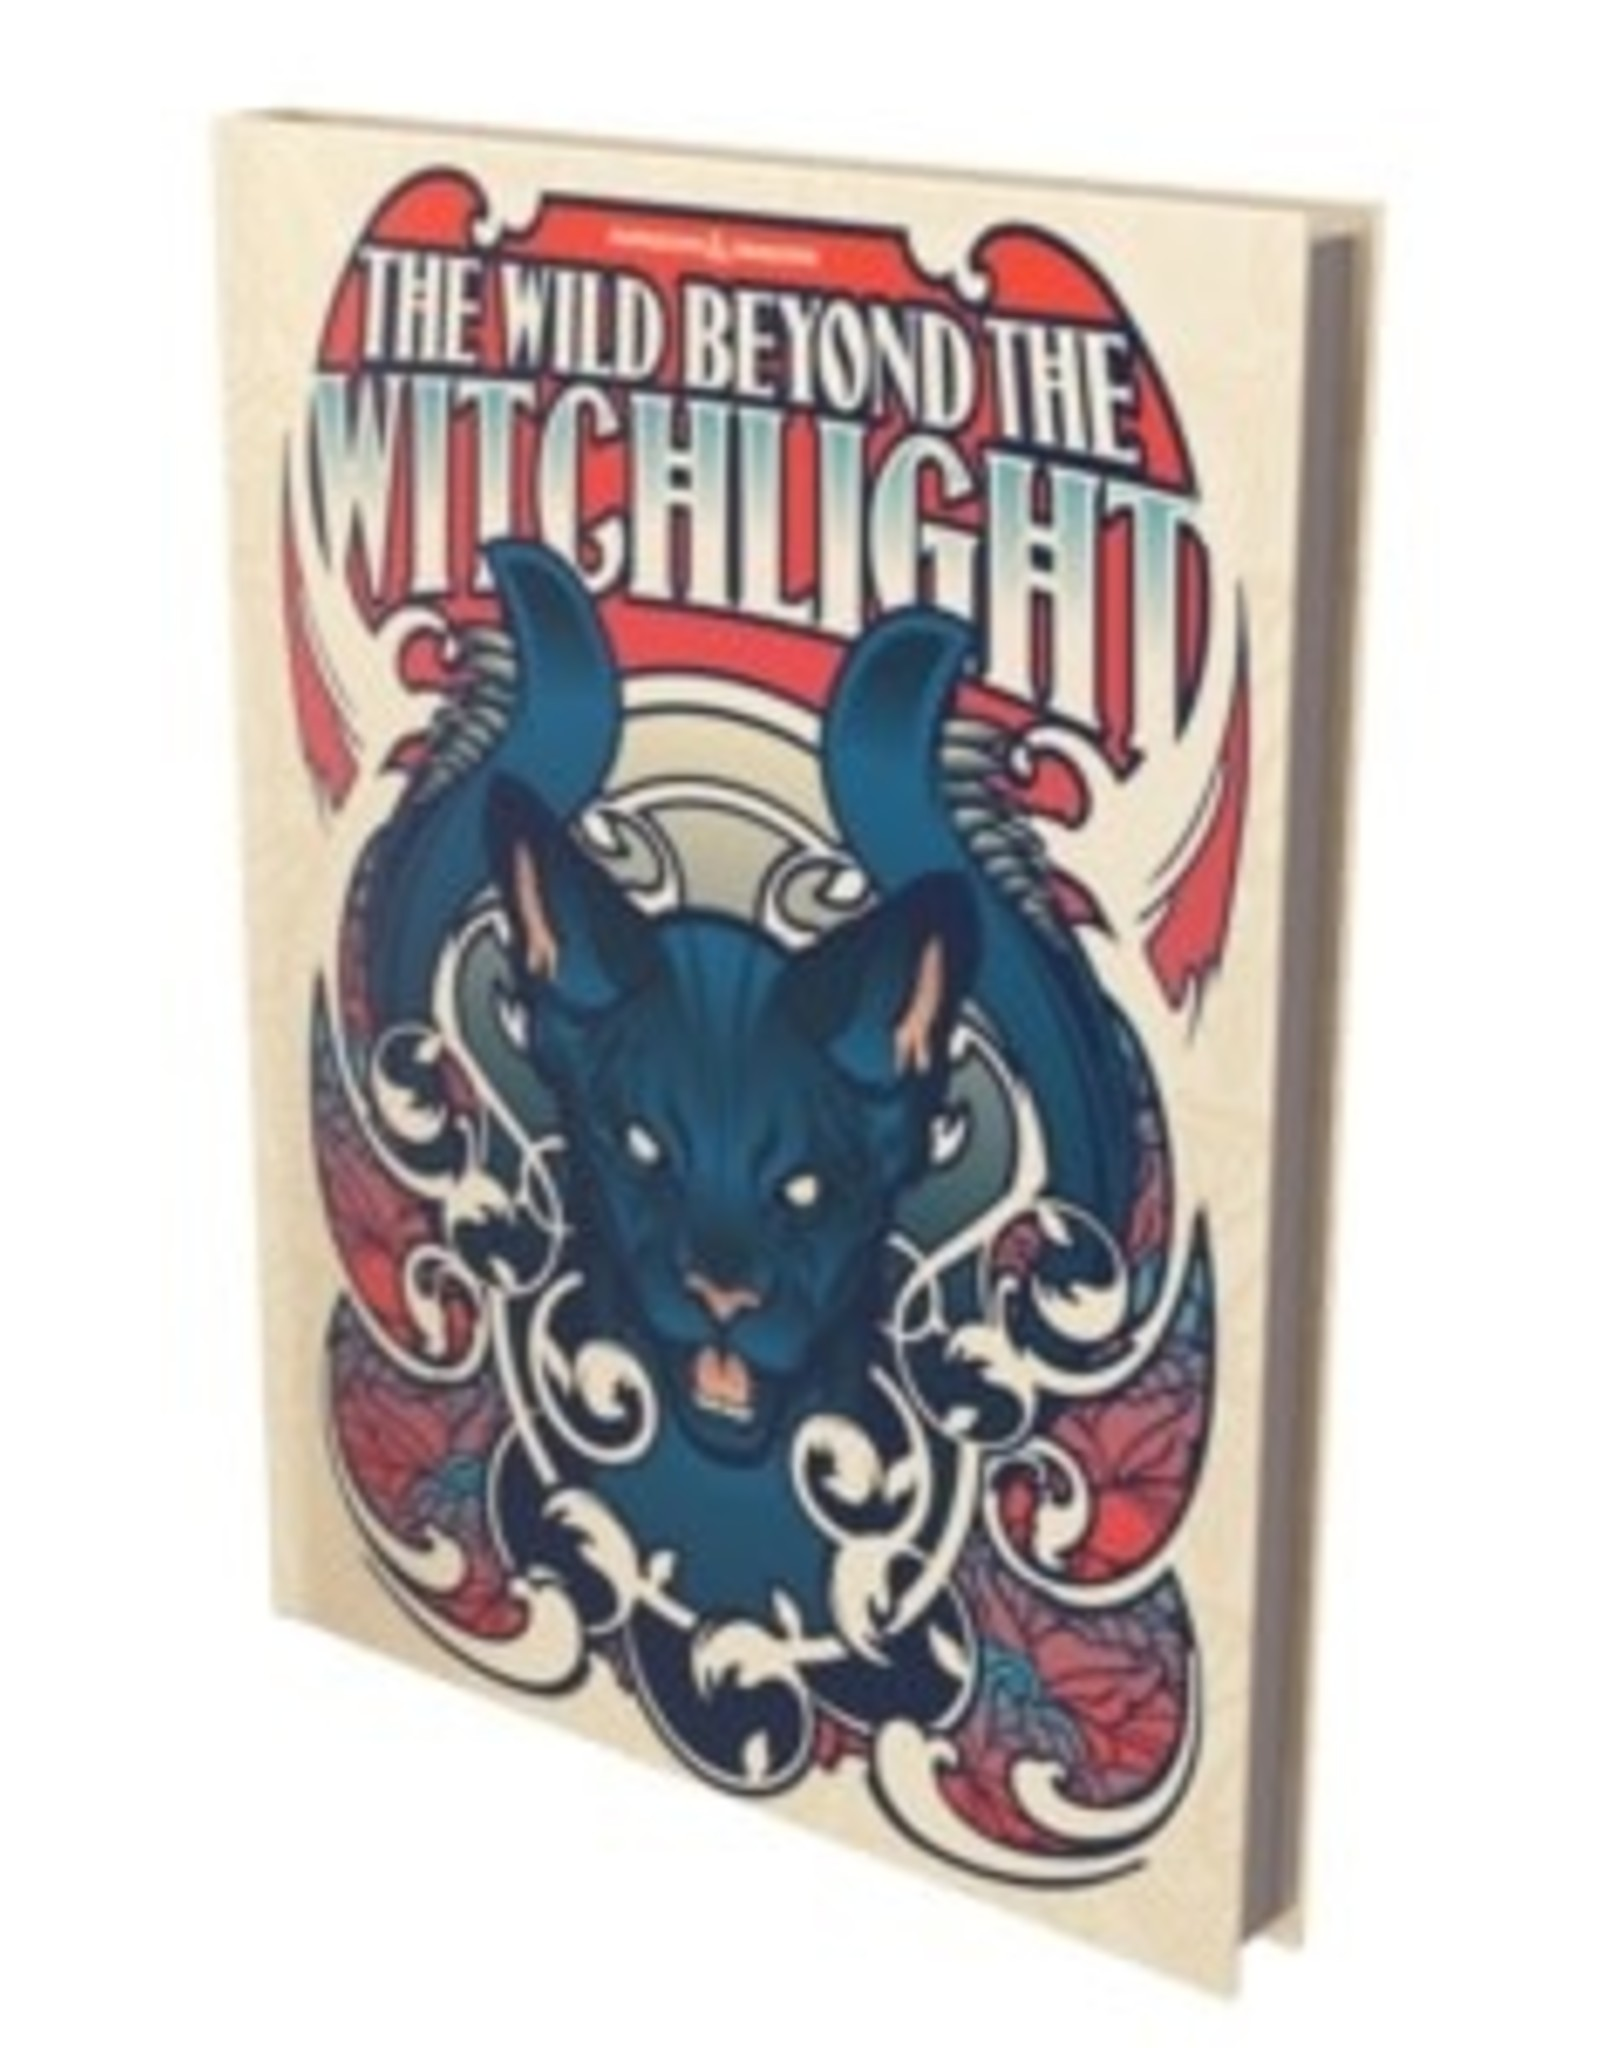 Wizards of the Coast PREORDER: The Wild Beyond the Witchlight - A Feywild Adventure Alt Cover (LE): D&D 5th Edition